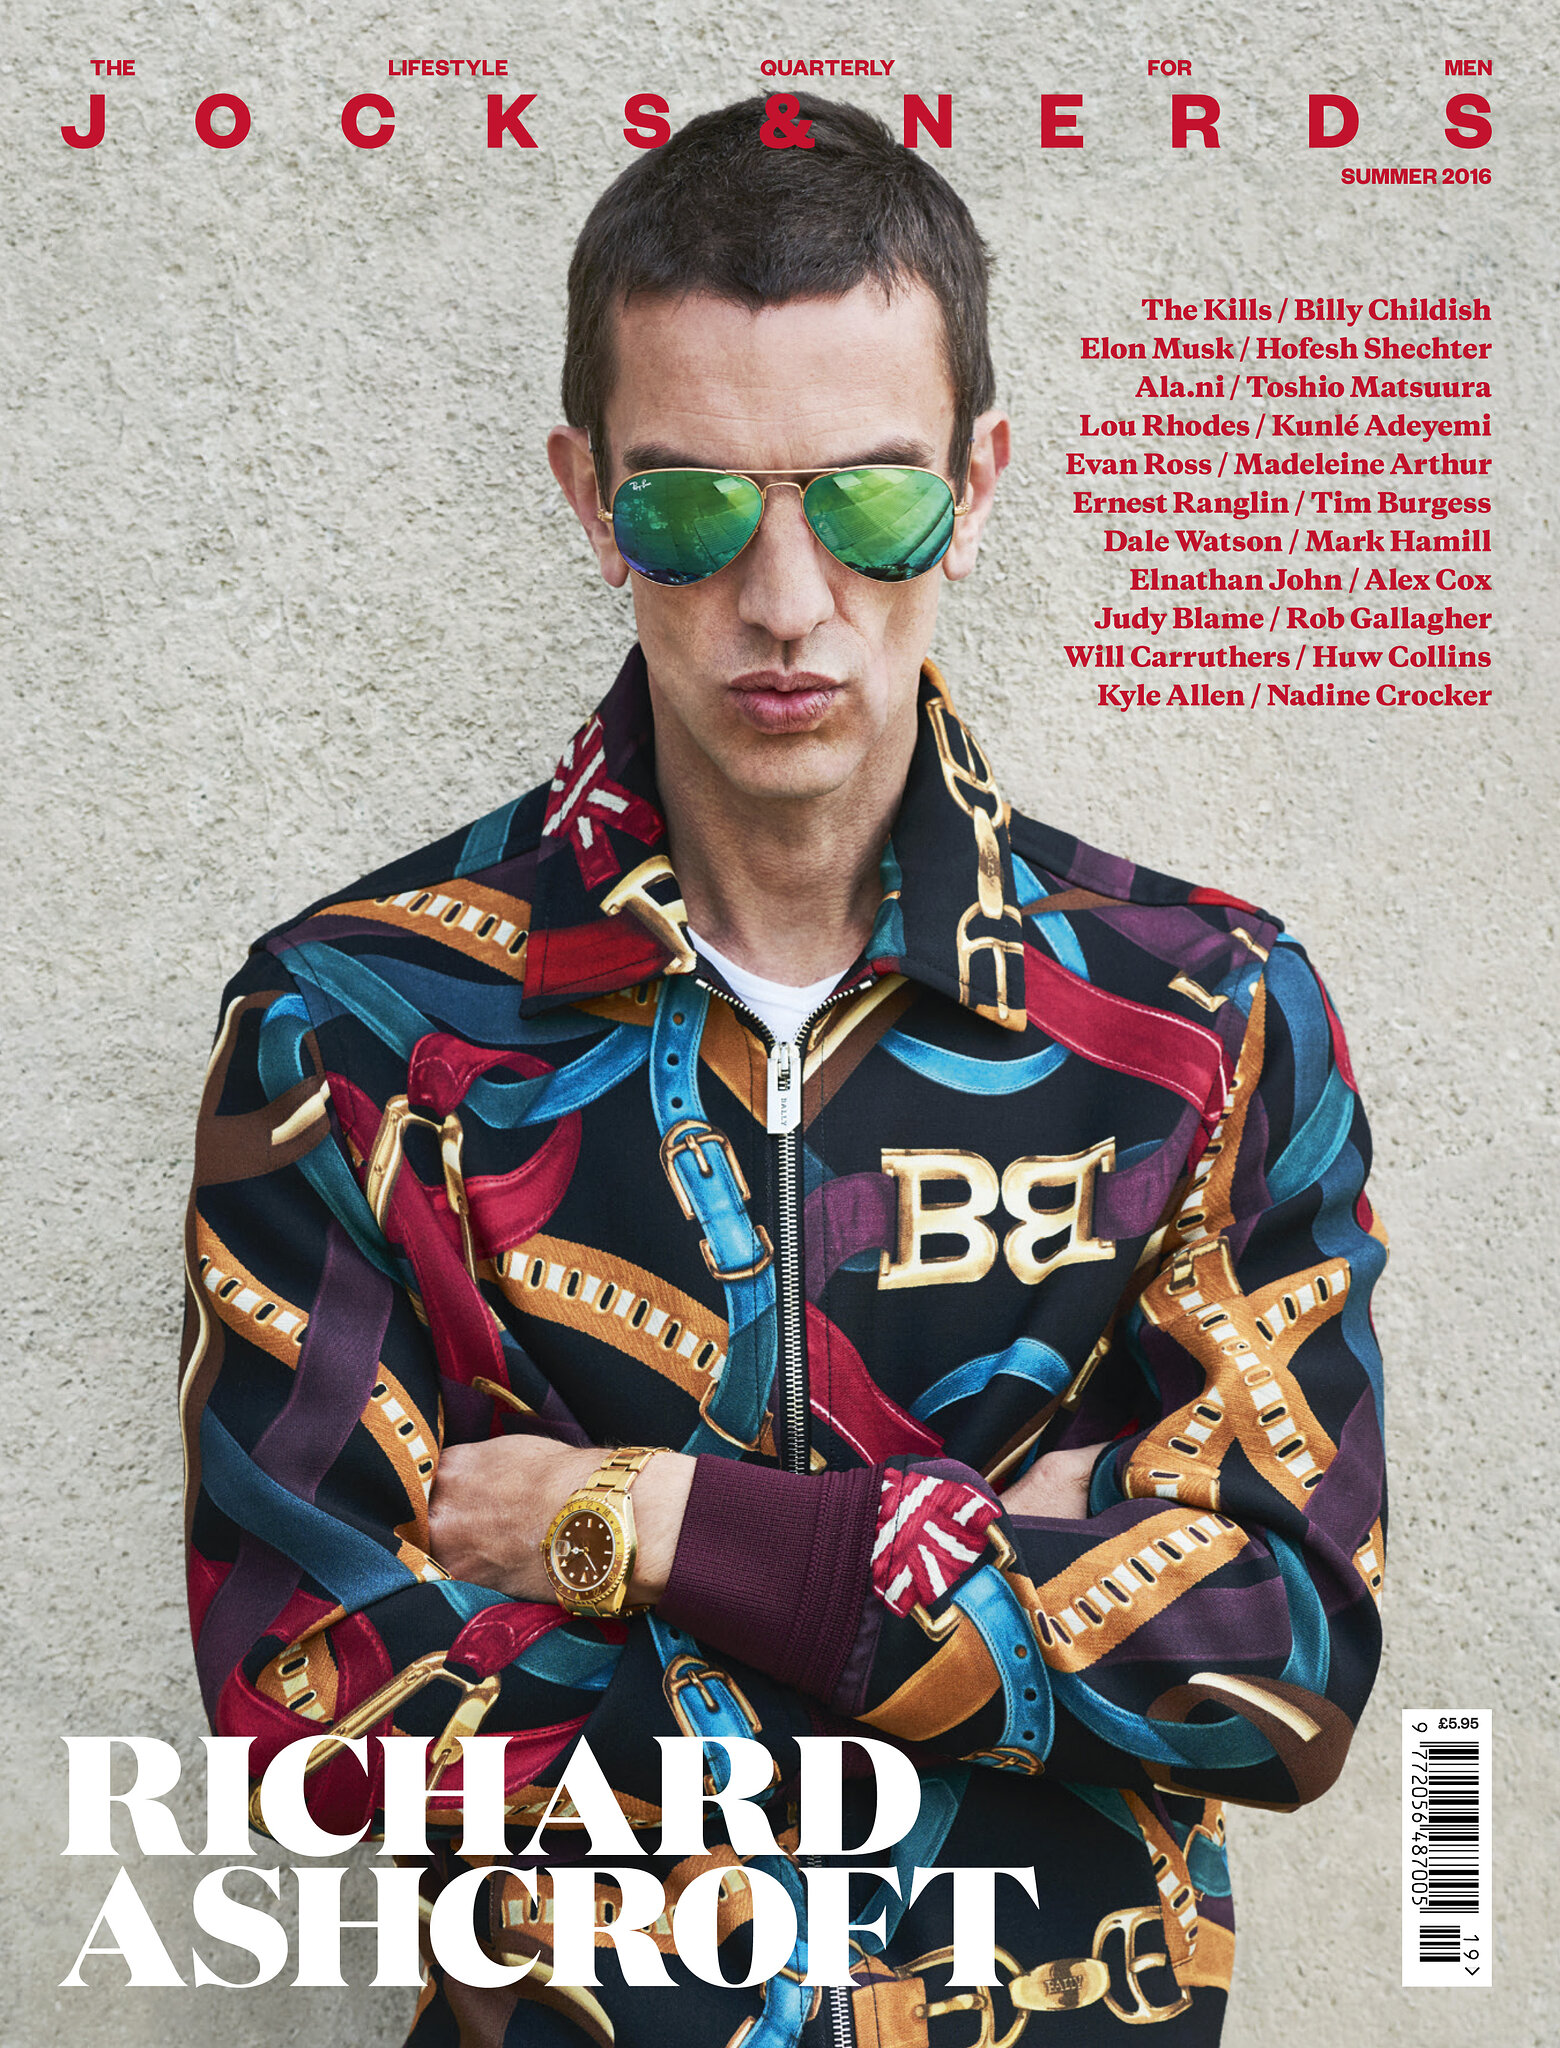 Jocks and Nerds: Issue 19: Richard Ashcroft